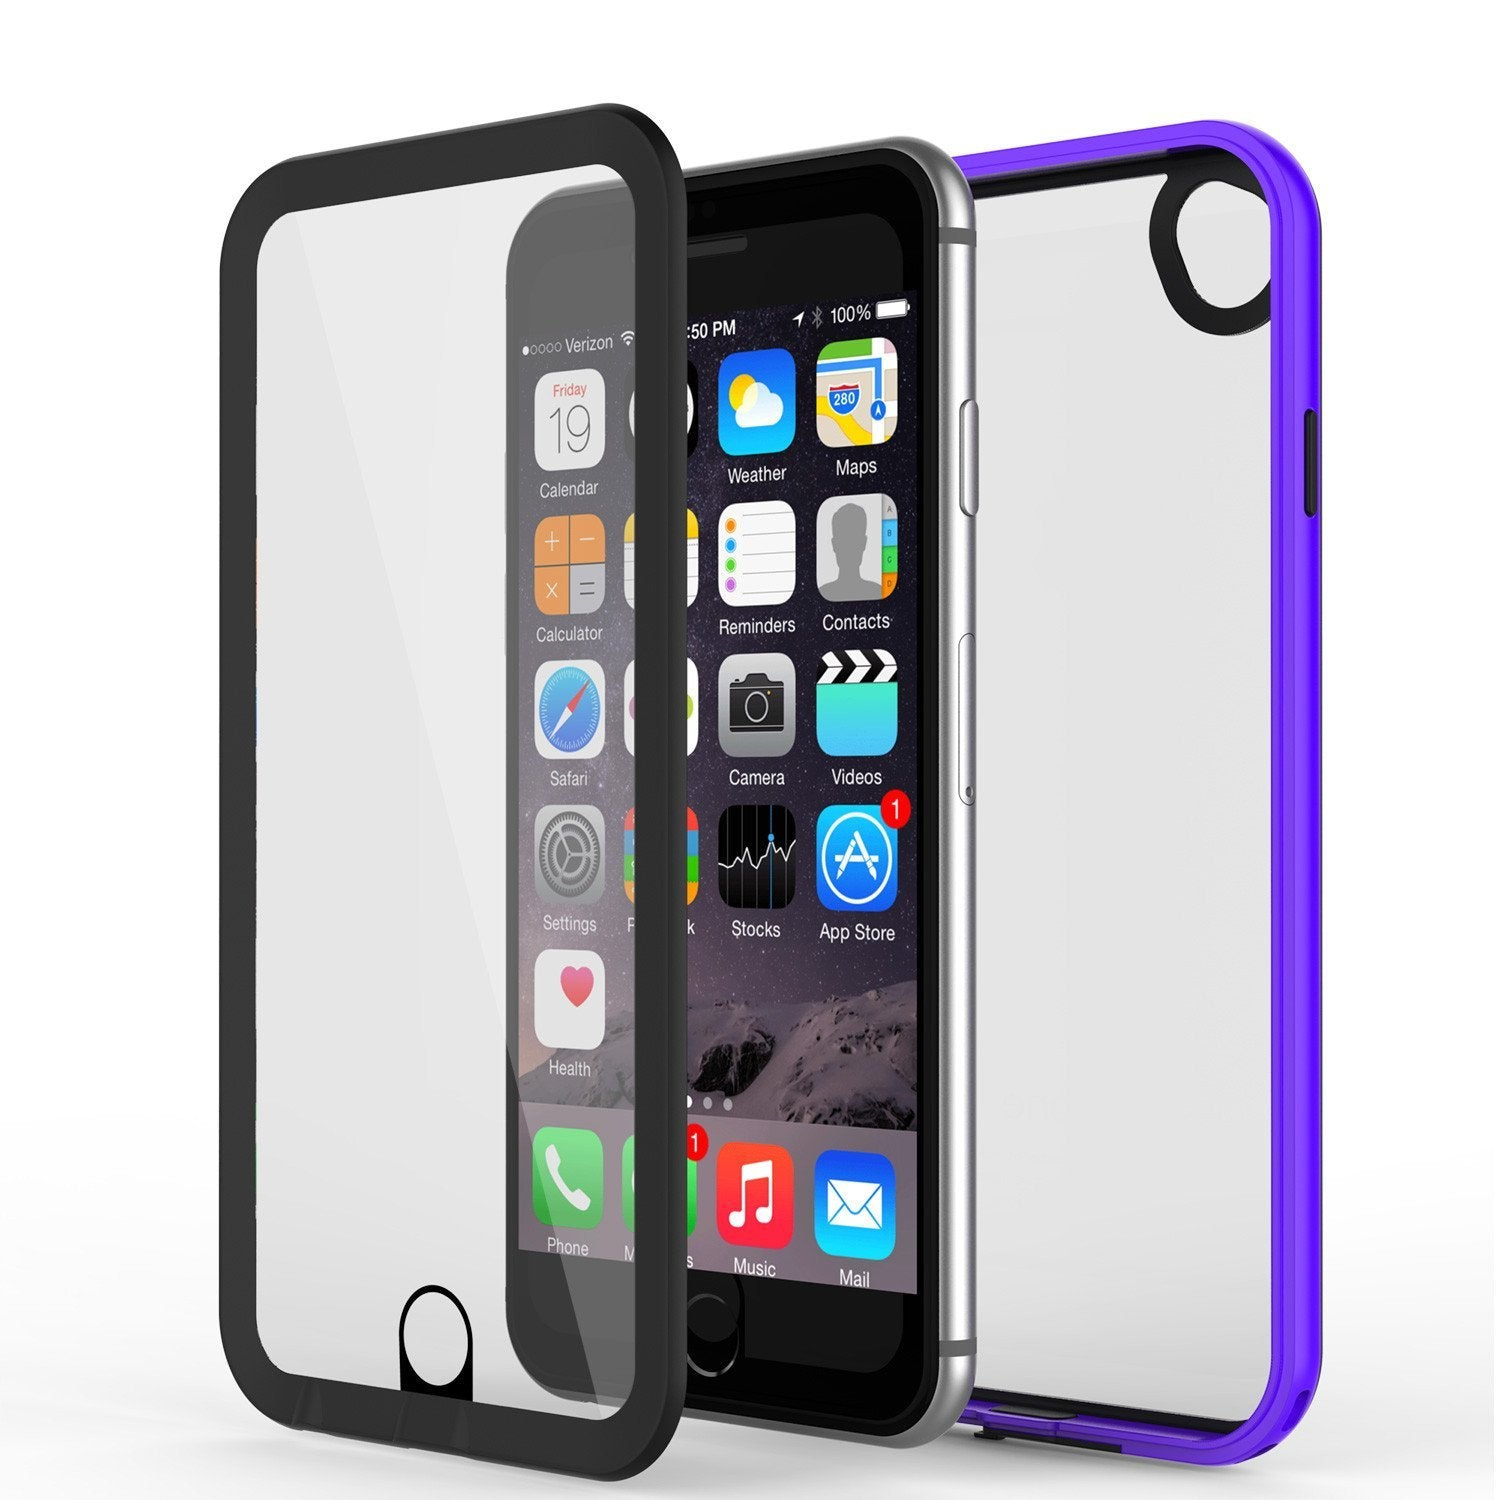 Apple iPhone 8 Waterproof Case, PUNKcase CRYSTAL 2.0 Purple W/ Attached Screen Protector  | Warranty - PunkCase NZ